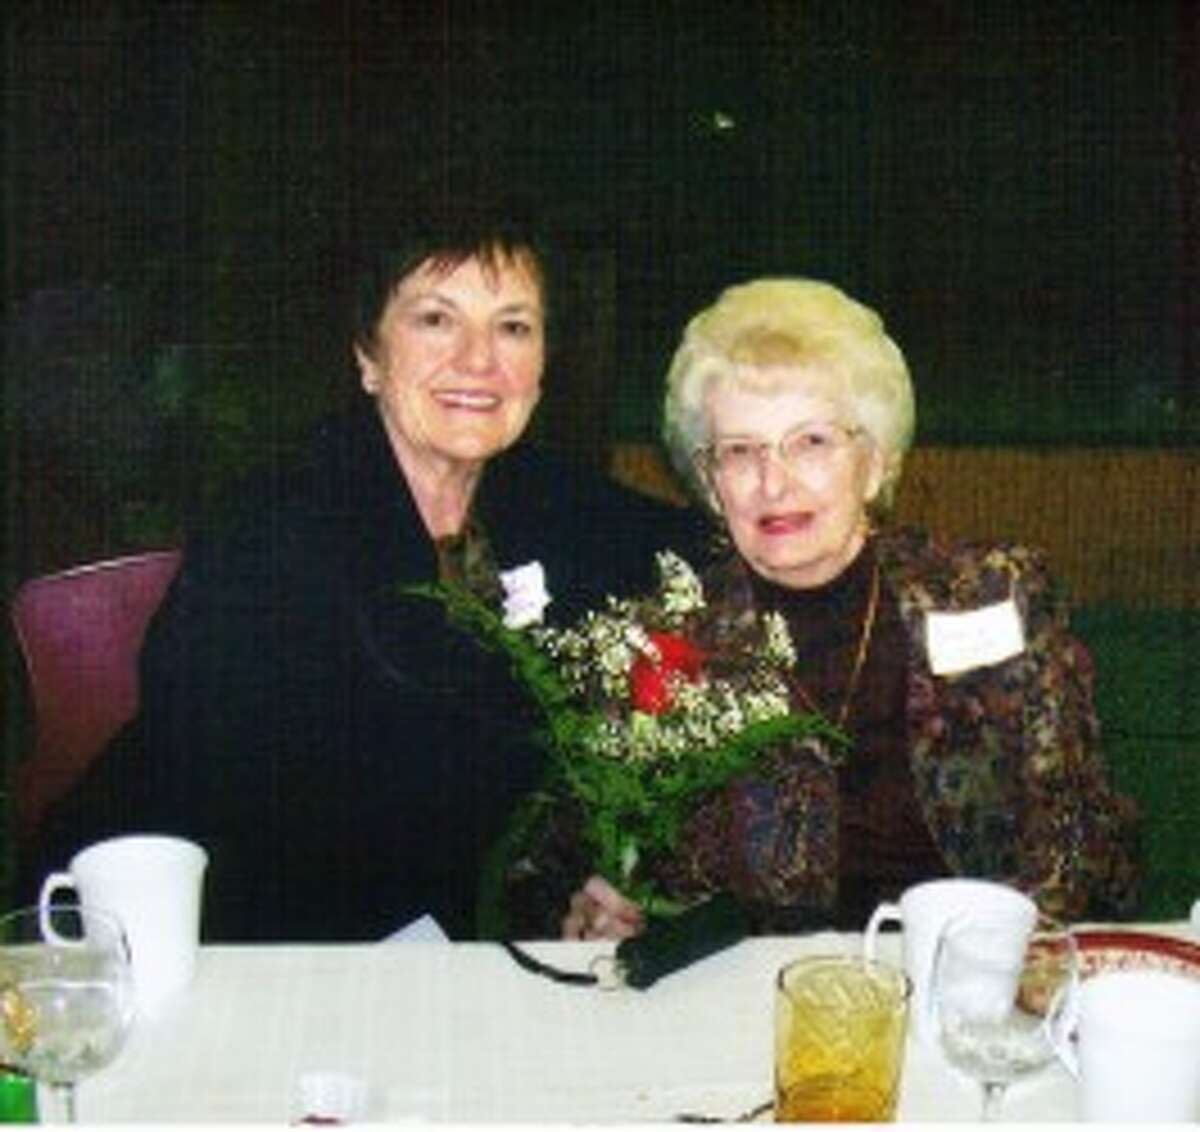 Nancy Lyon, right, with friend Marilyn Galer, attends the induction ceremony for Delta Kappa Gamma, a sorority for women educators. (Courtesy Photo)